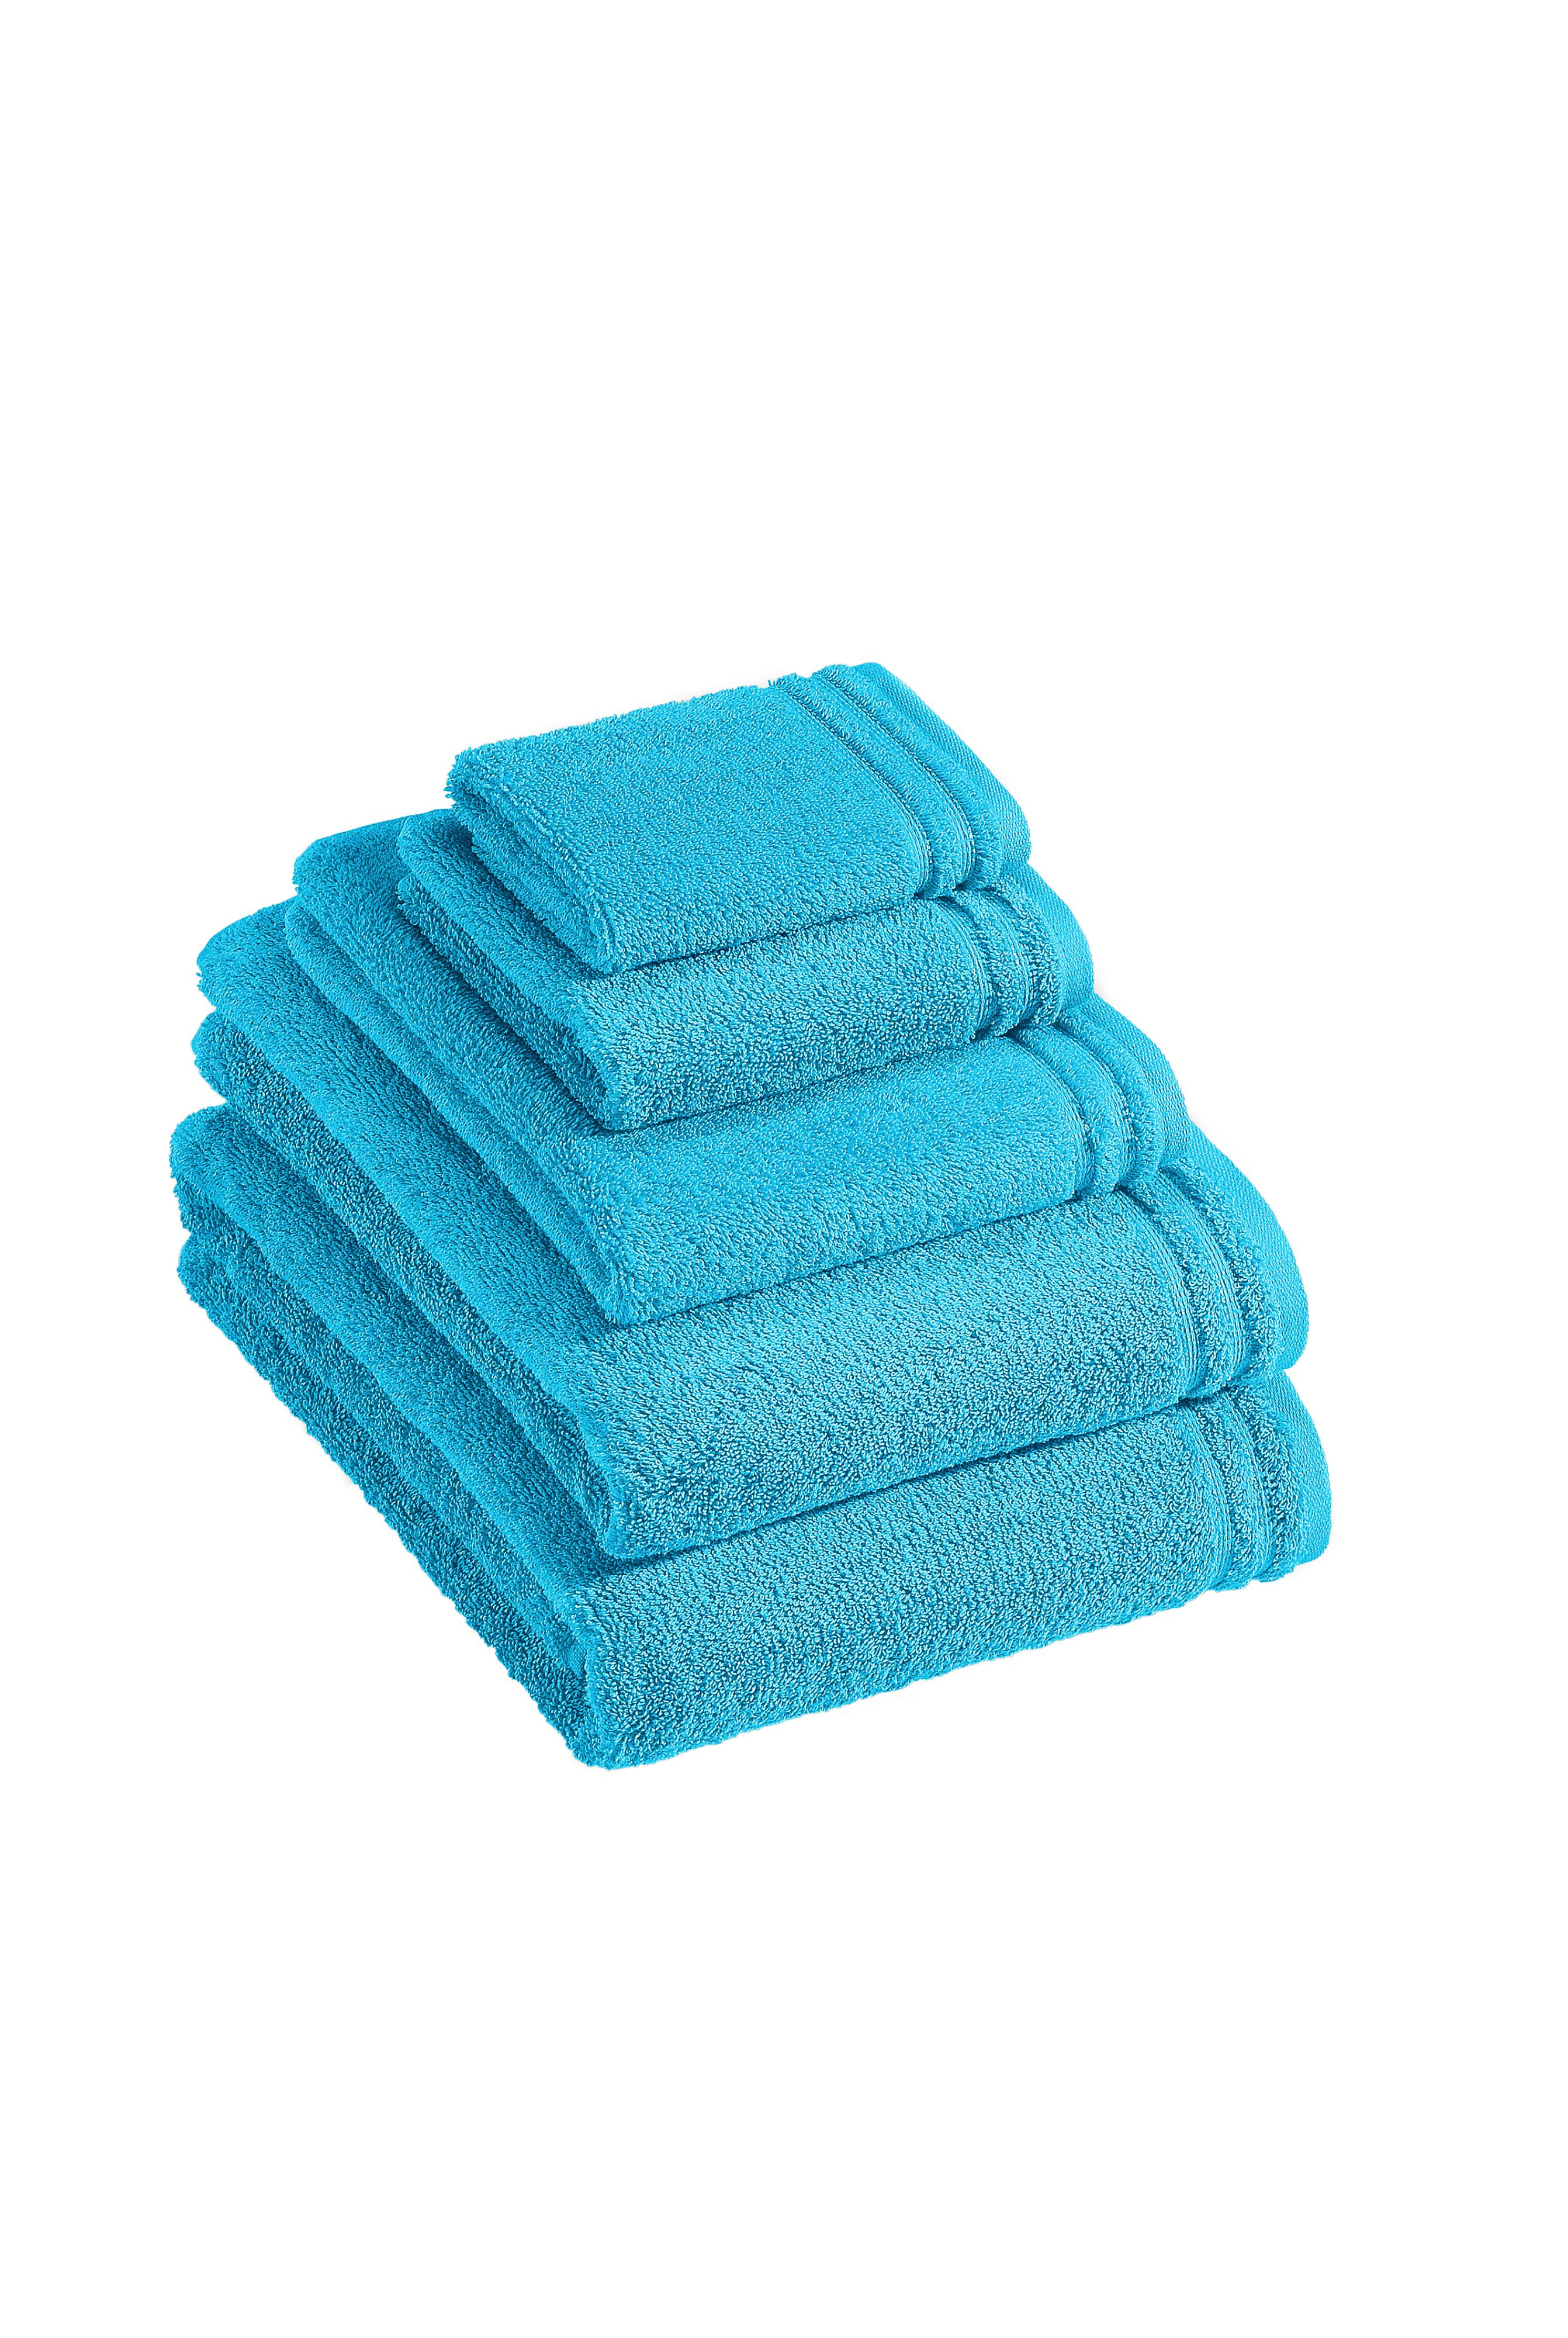 Calypso Feeling towel range in turquoise